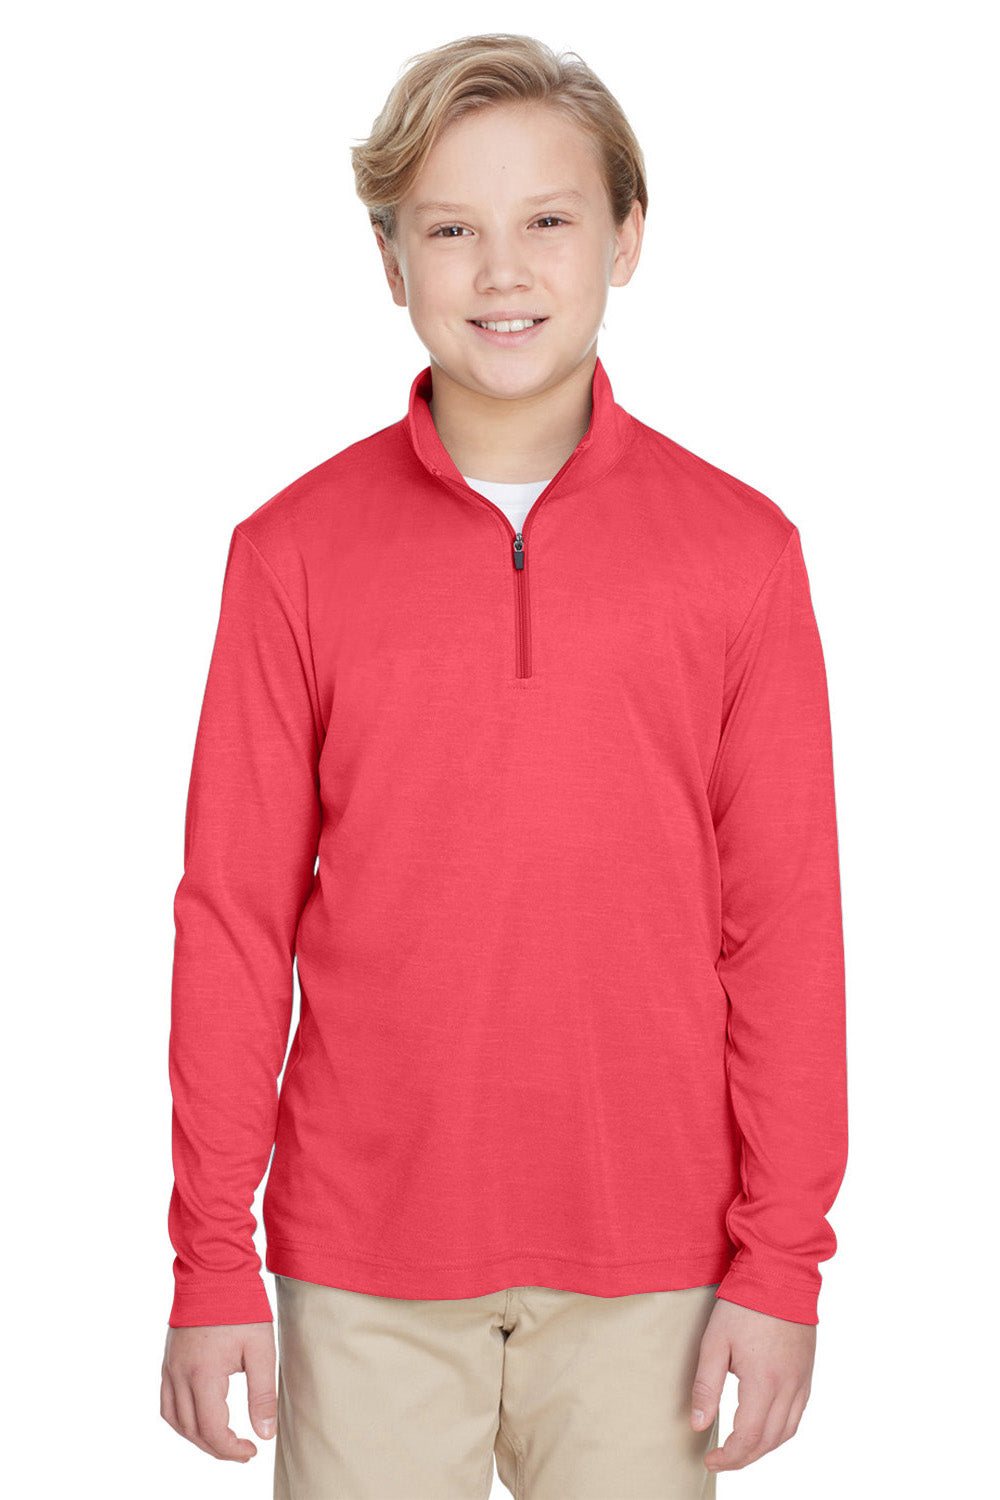 Team 365 TT31HY Youth Zone Sonic Performance Moisture Wicking 1/4 Zip Sweatshirt Red Front